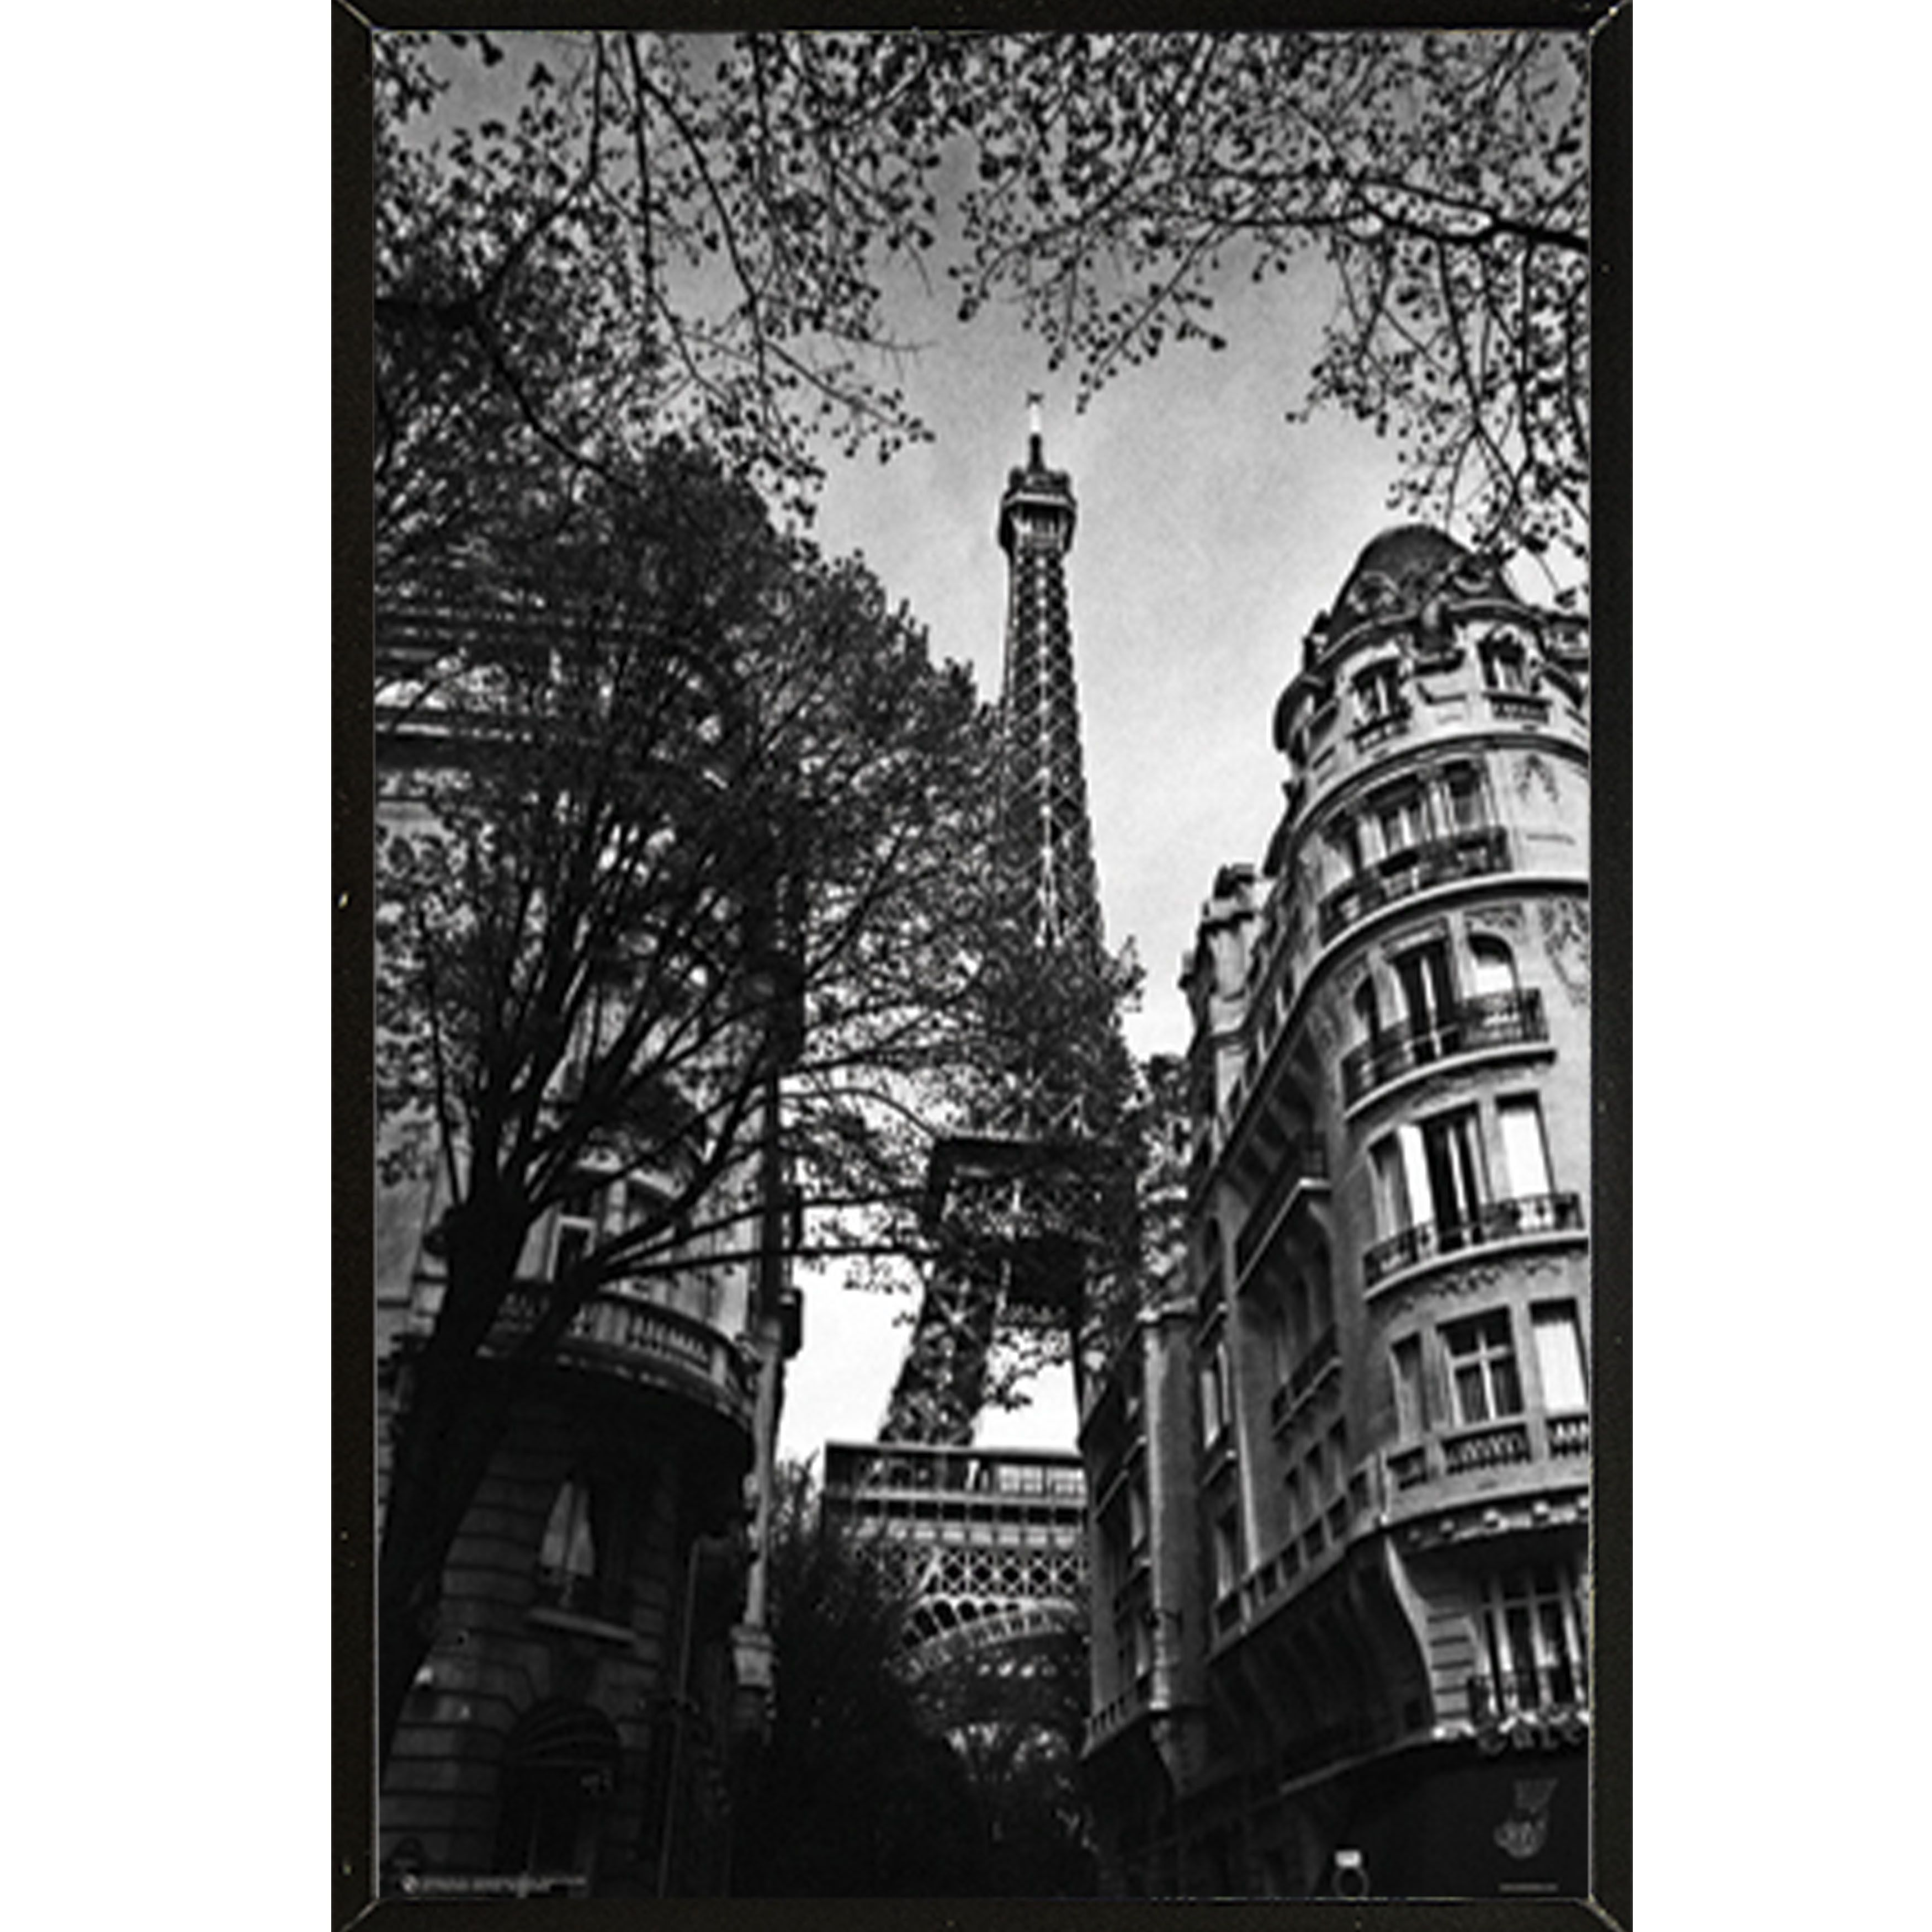 Usa ueiffel toweru and white inch x inch poster with hardboard